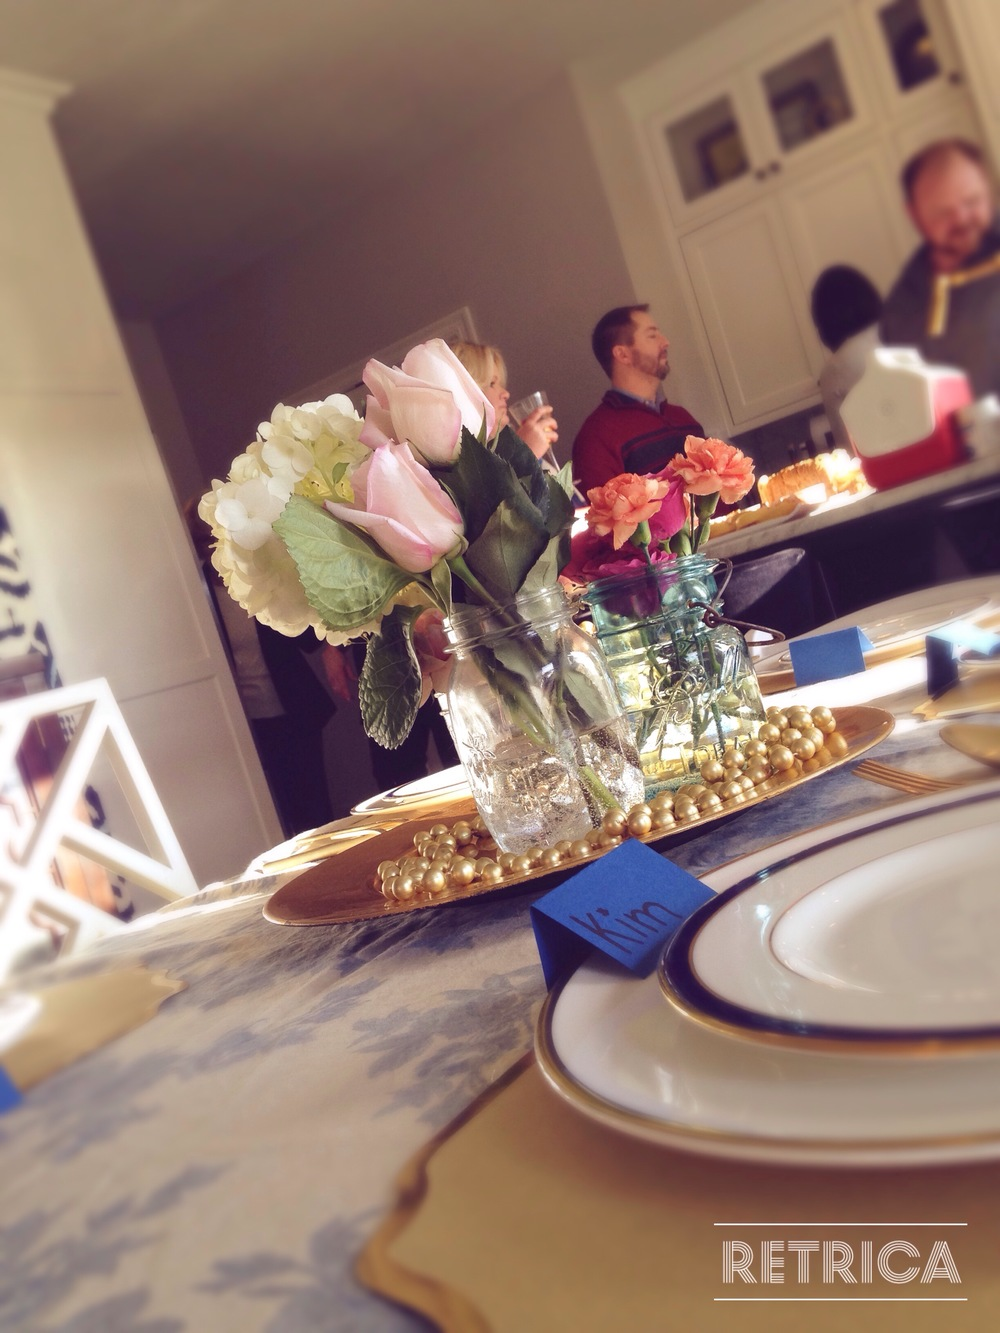 Ellie Wheeler had a sophisticated look with gold trim place mats and fresh flowers.